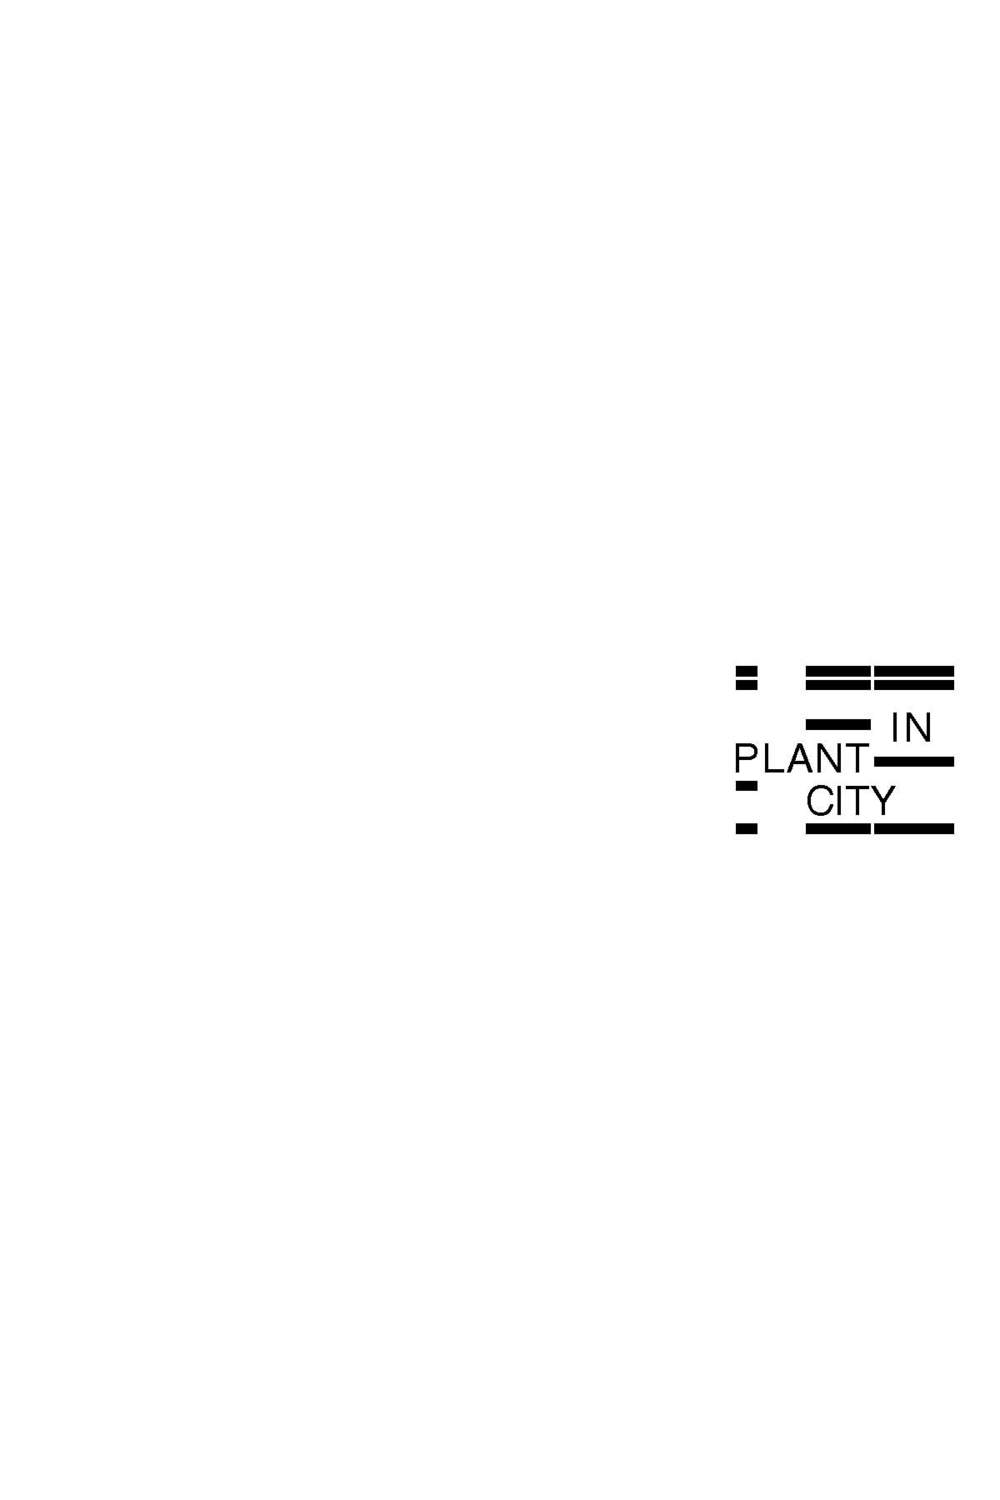 2nd edition_Plant-In City_Page_01.jpg